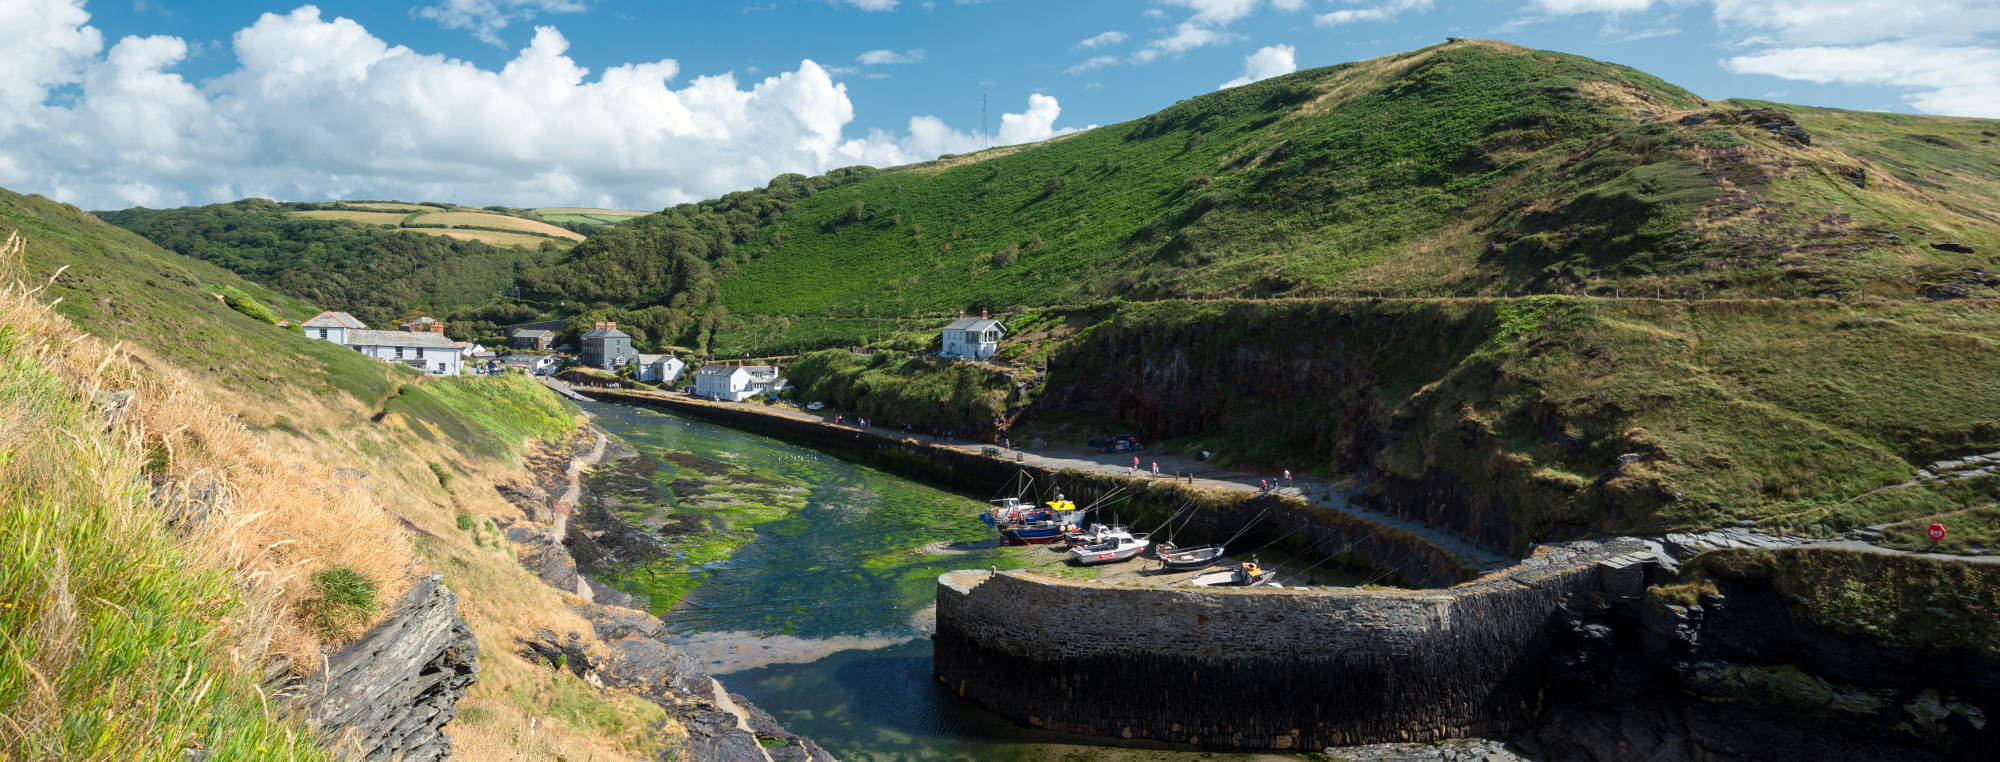 Boscastle Harbour, part of the Smuggler's Way, Cornwall